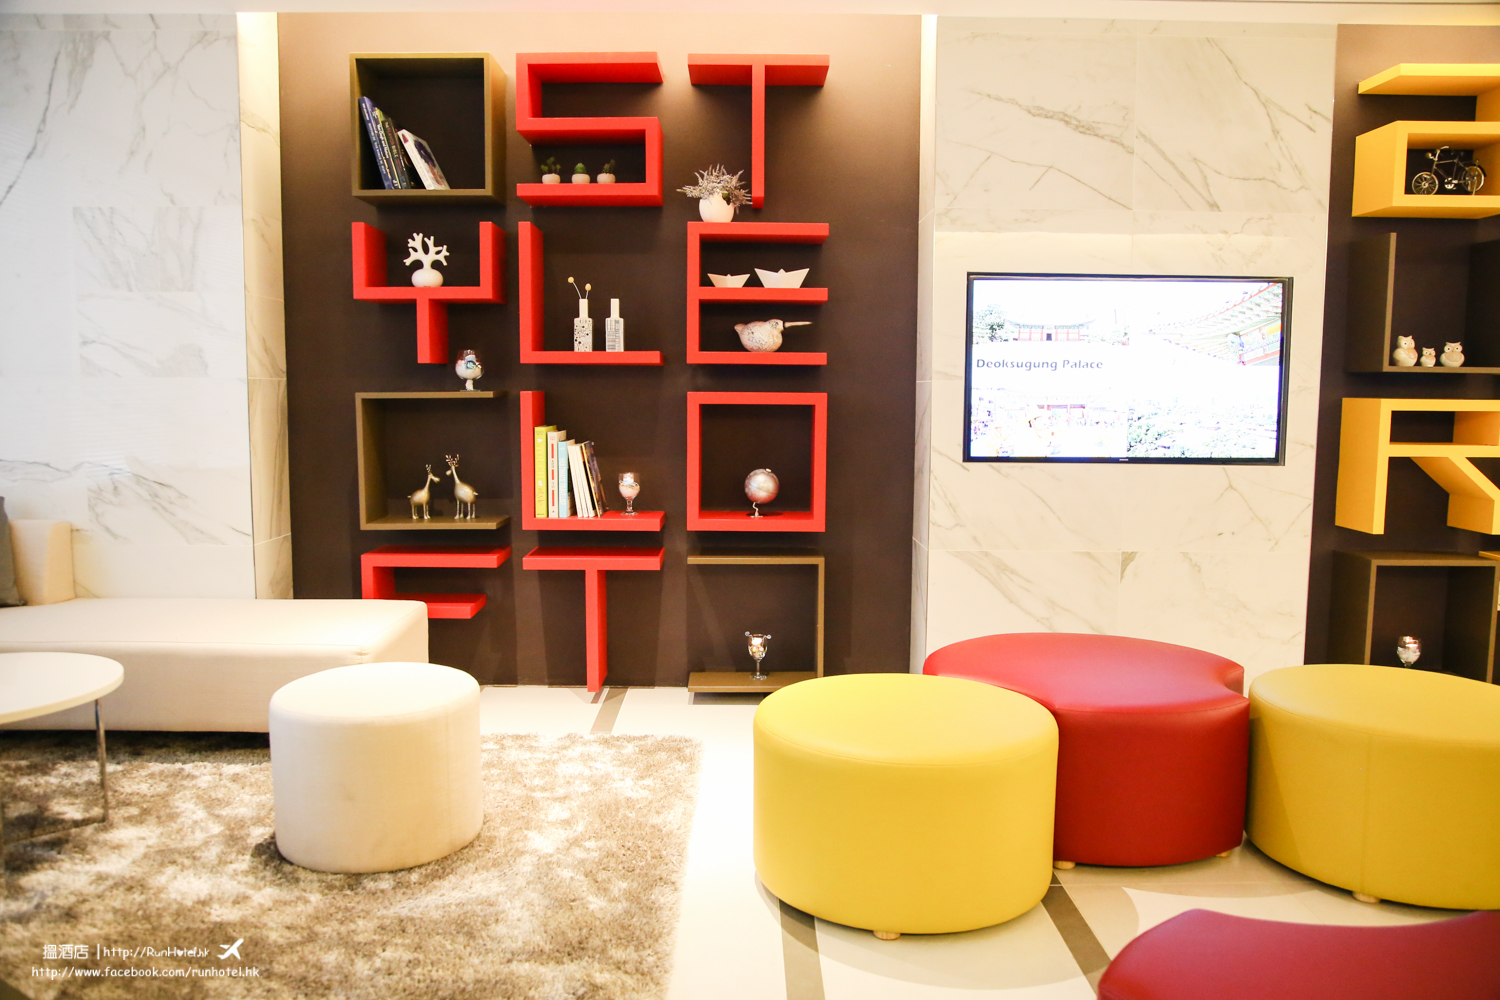 a-first-myeongdong-hotel-28